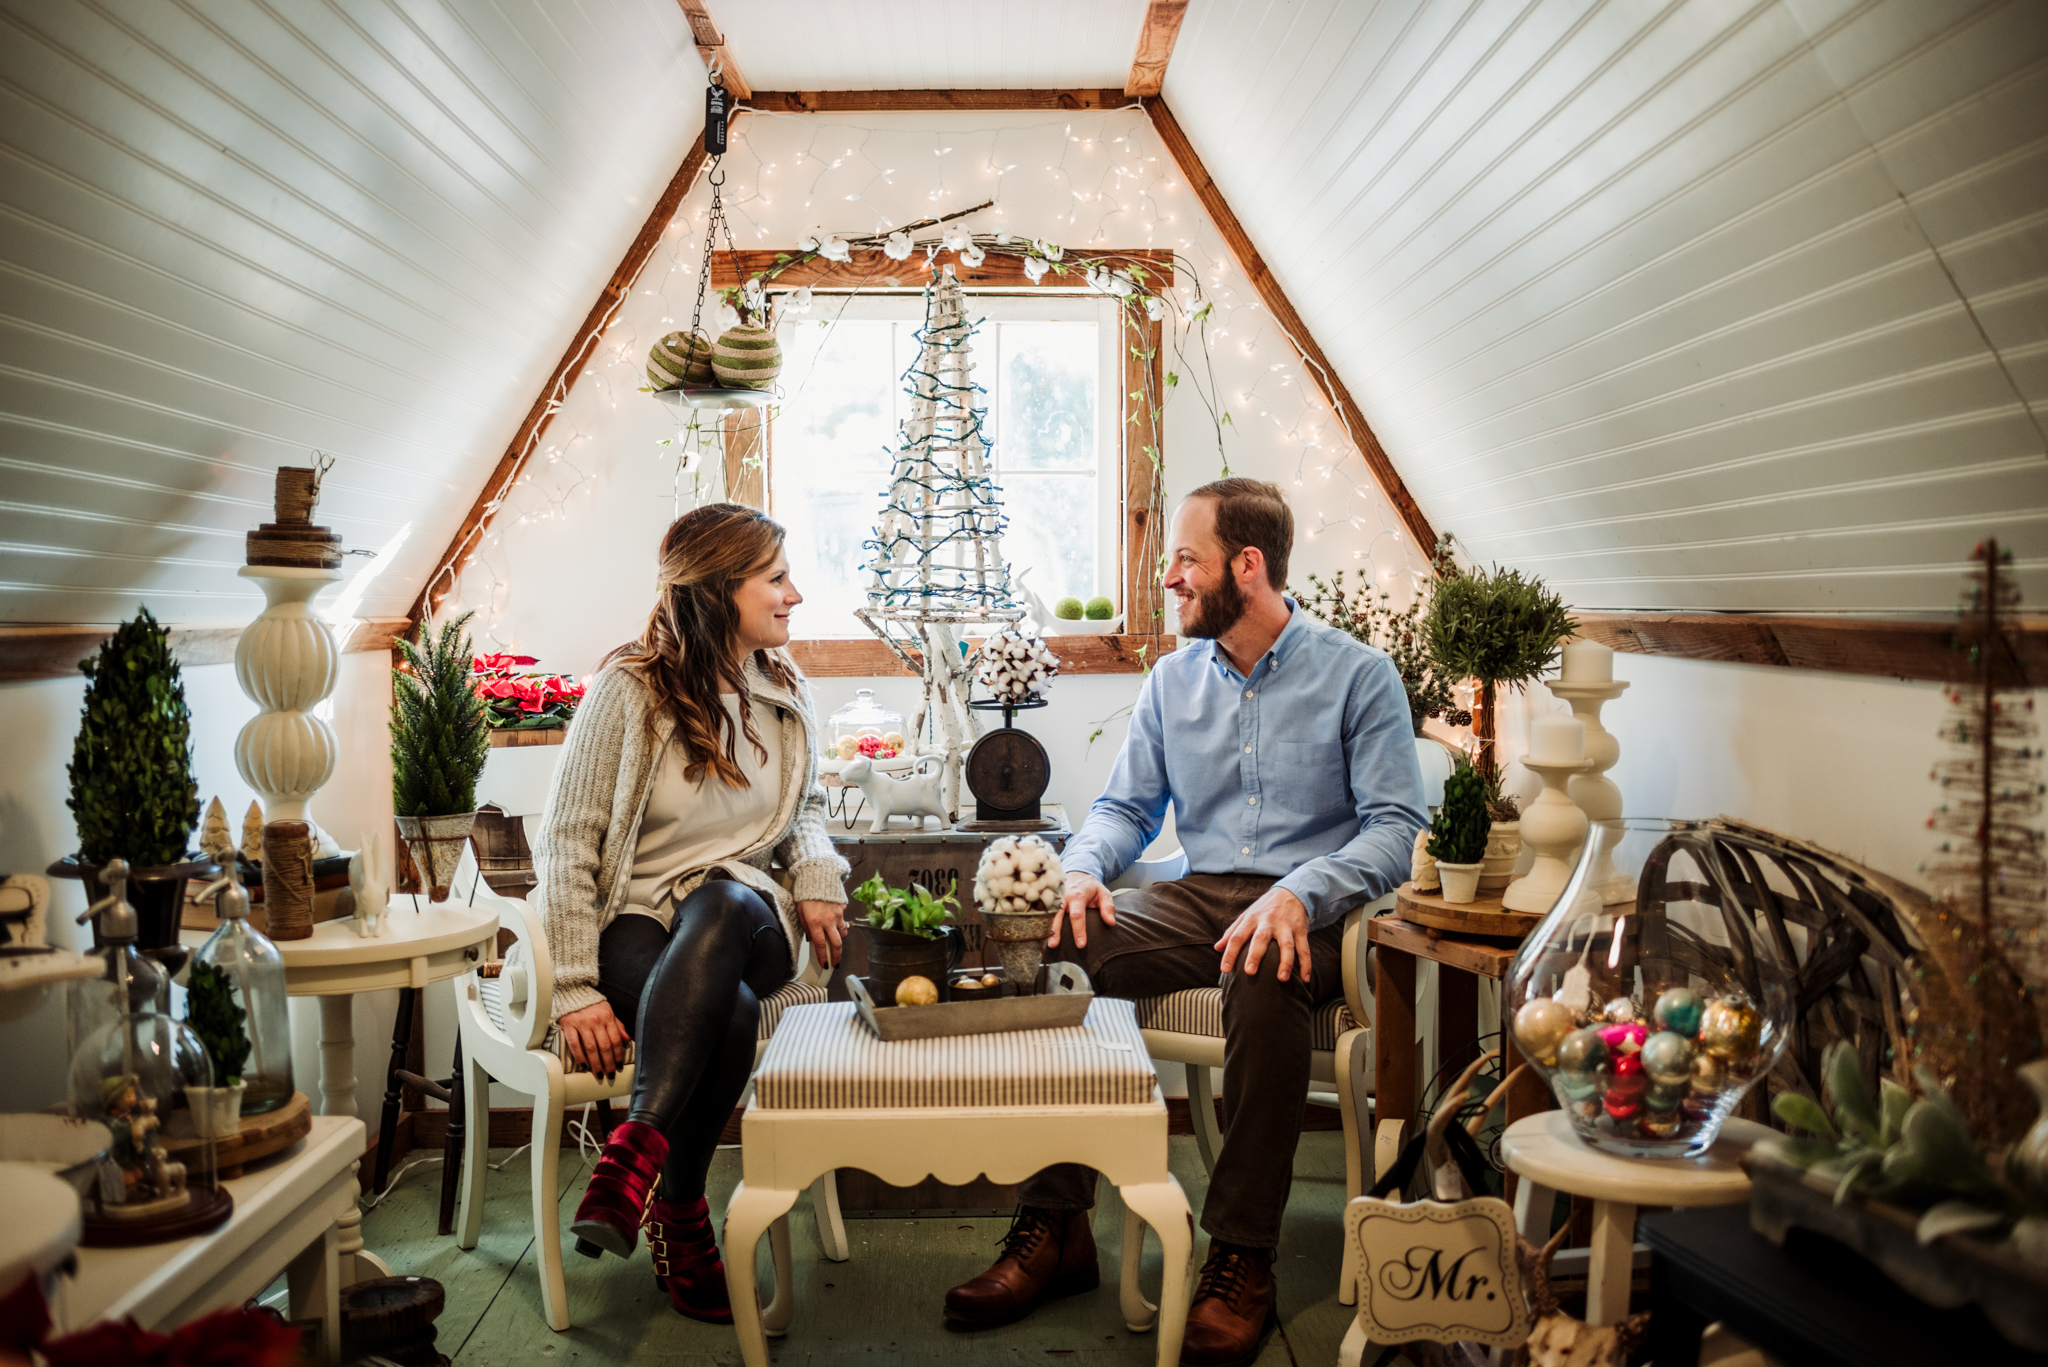 a-cute-Christmas-corner-during-their-engagement-session-in-Raleigh.jpg